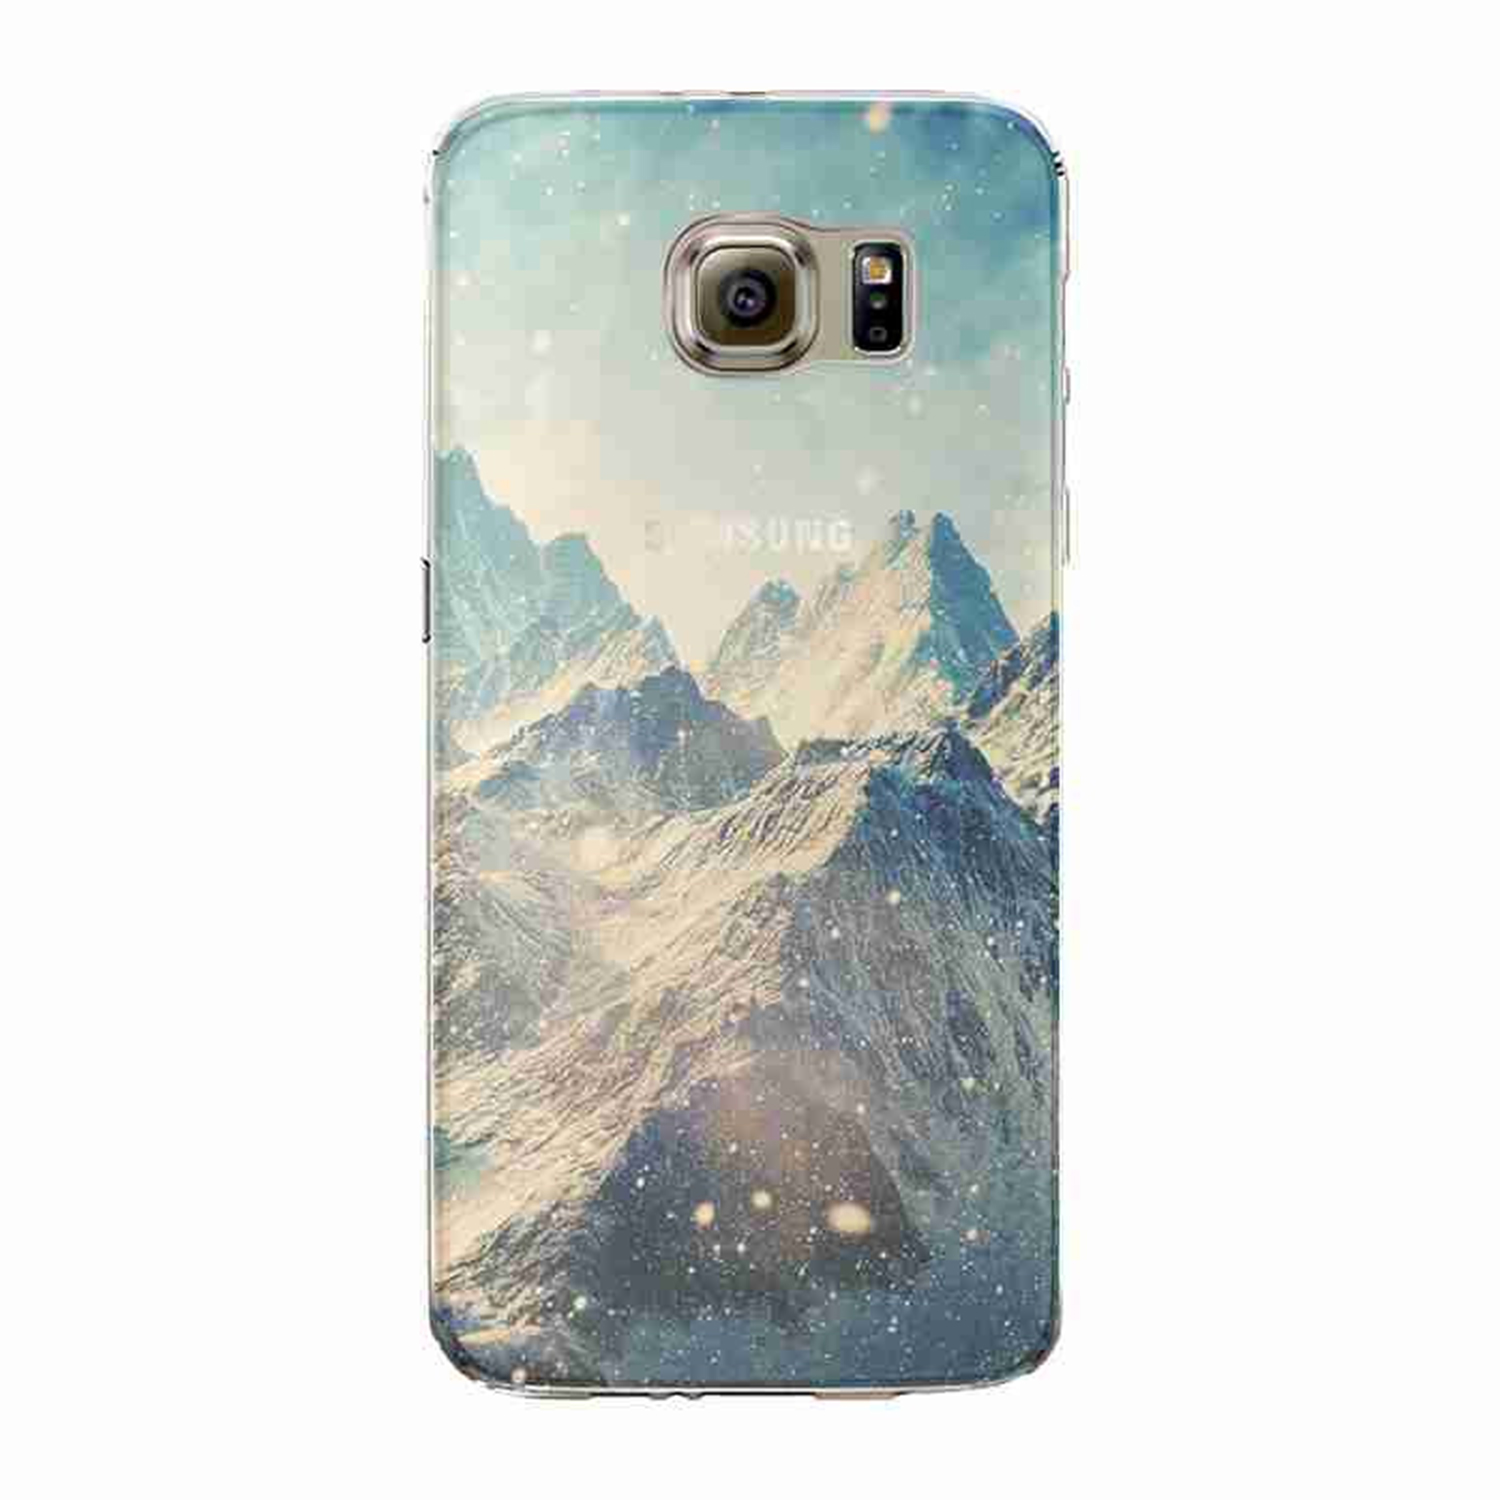 Kritzel Case Collection Galaxy S7 edge - Nature #315